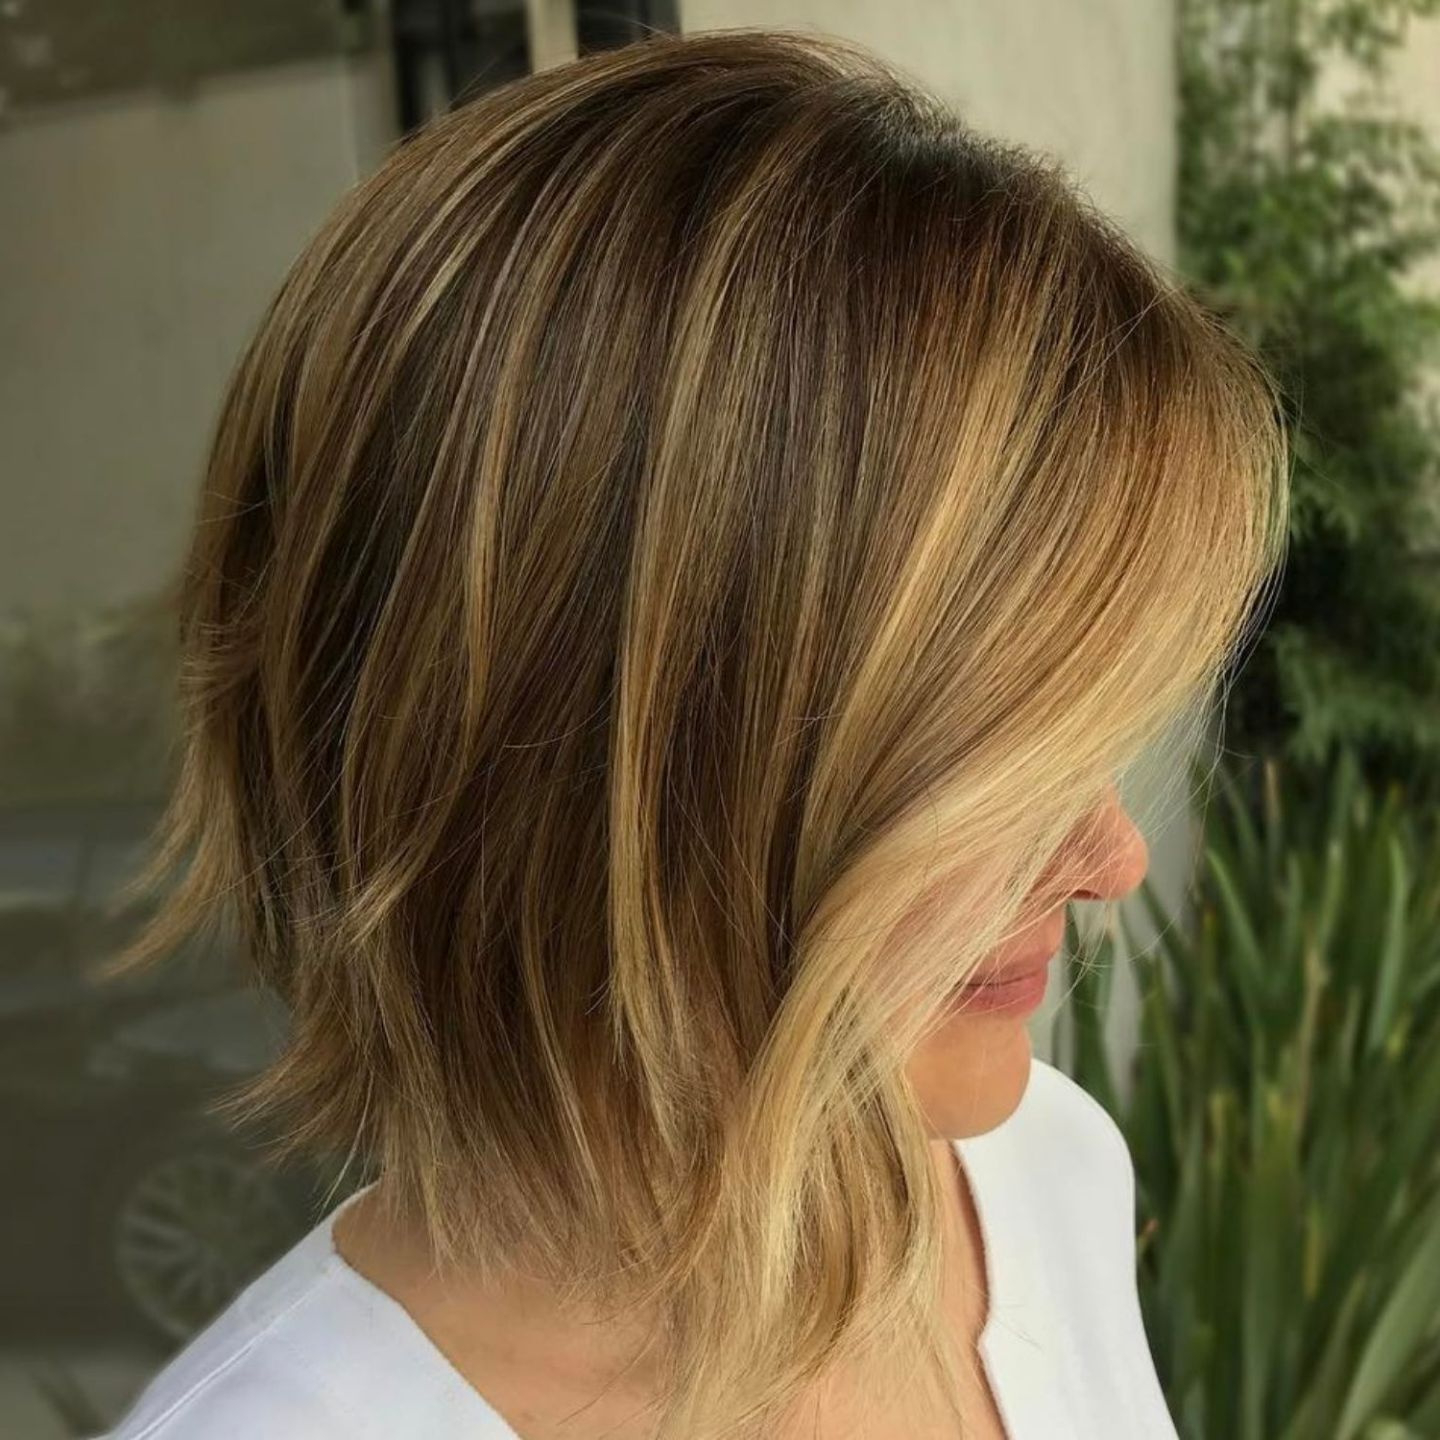 Hairstyles : Shoulder Length Choppy Bob Cool Shoulder Length Inside Shoulder Length Choppy Hairstyles (View 16 of 20)